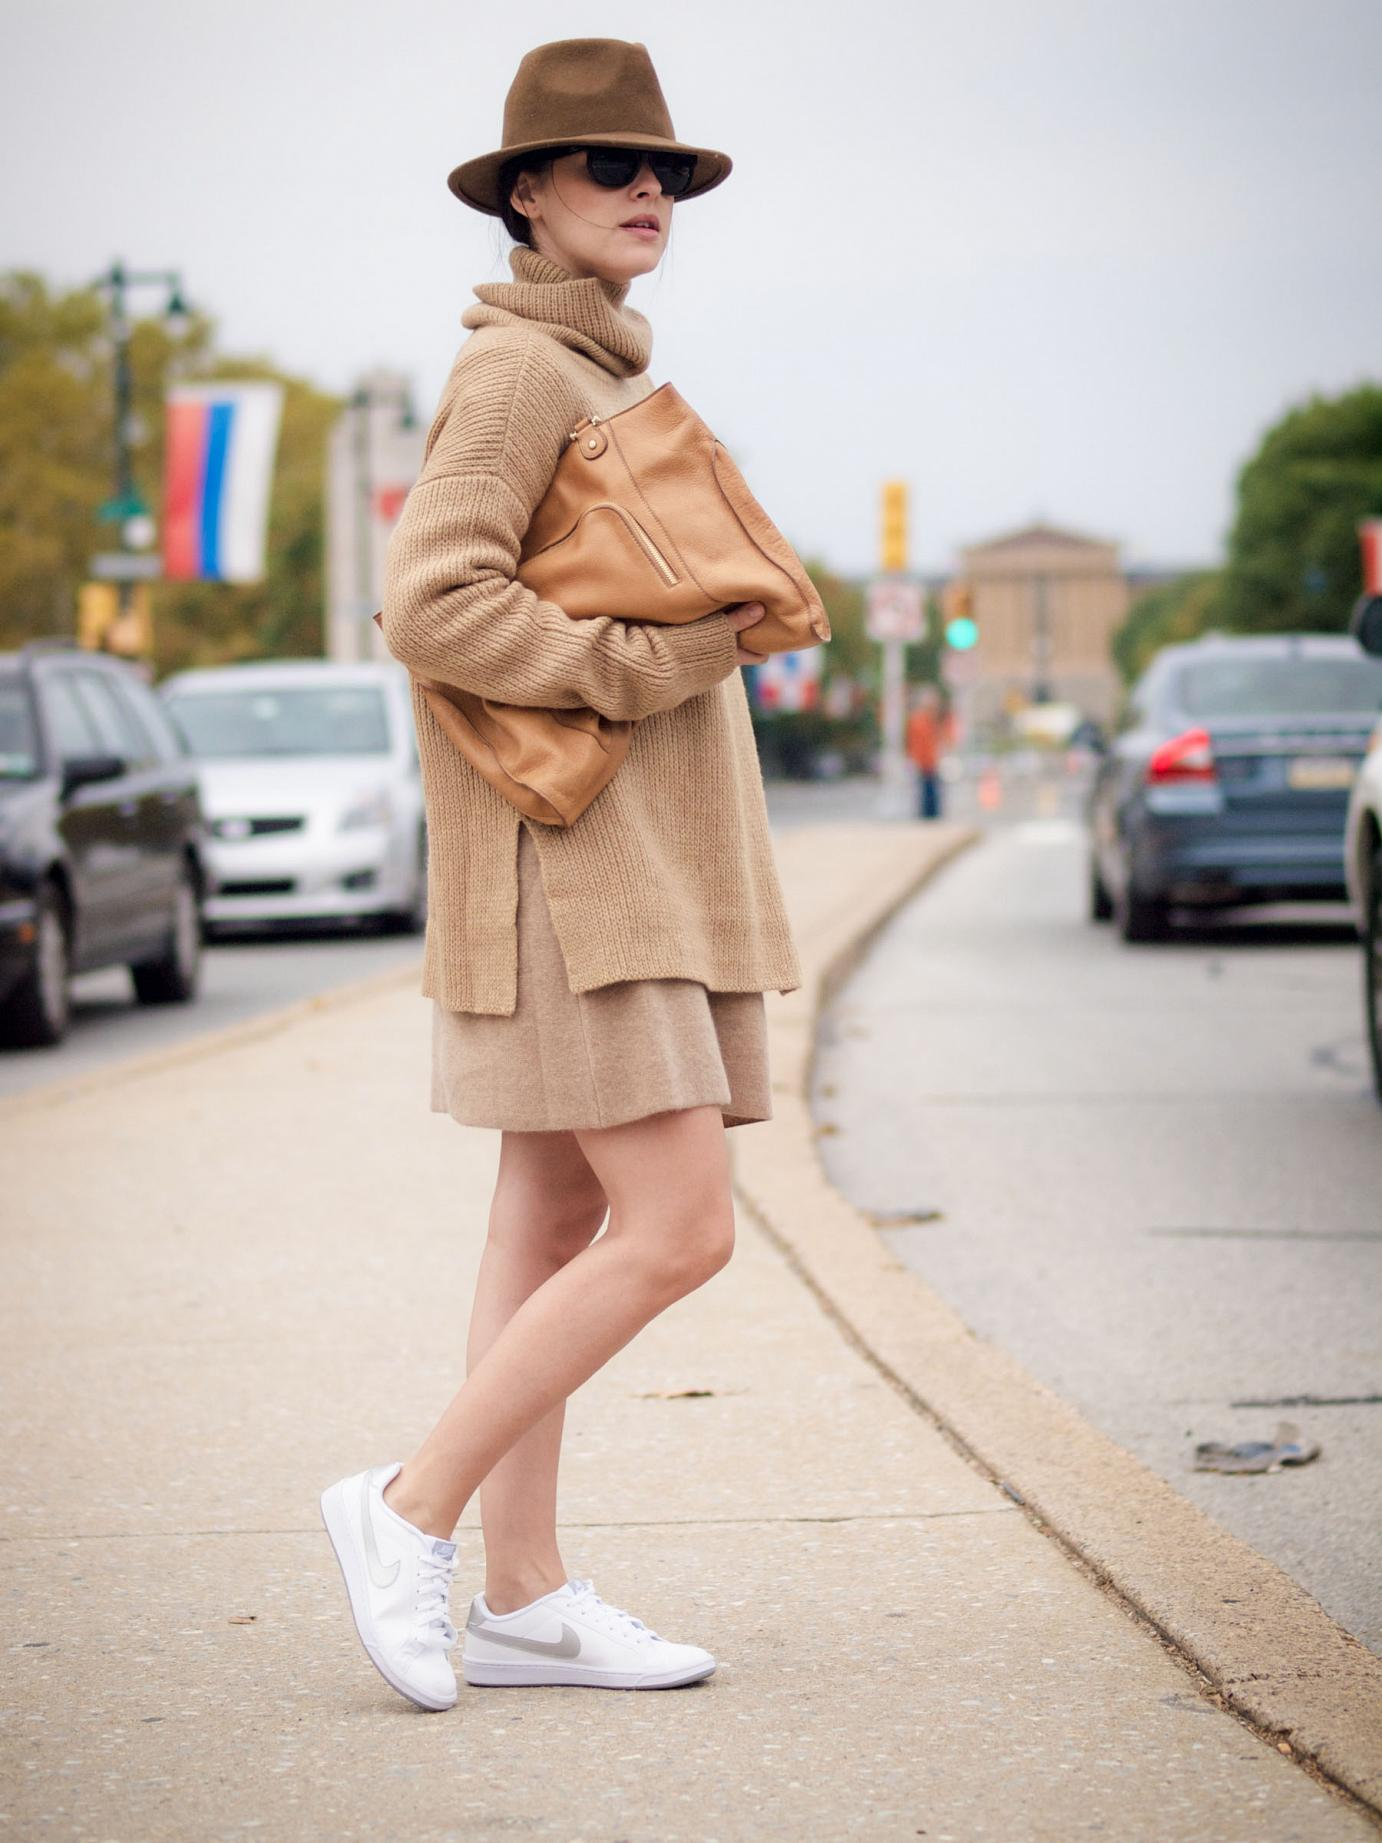 bittersweet colours, Philadelphia, Philadelphia city guide, calypso st barth, nike sneakers, white sneakers, cashmere sweater, camel trend, camel dress, camel sweater, turtleneck, fall, street style, fall colors, maternity style,